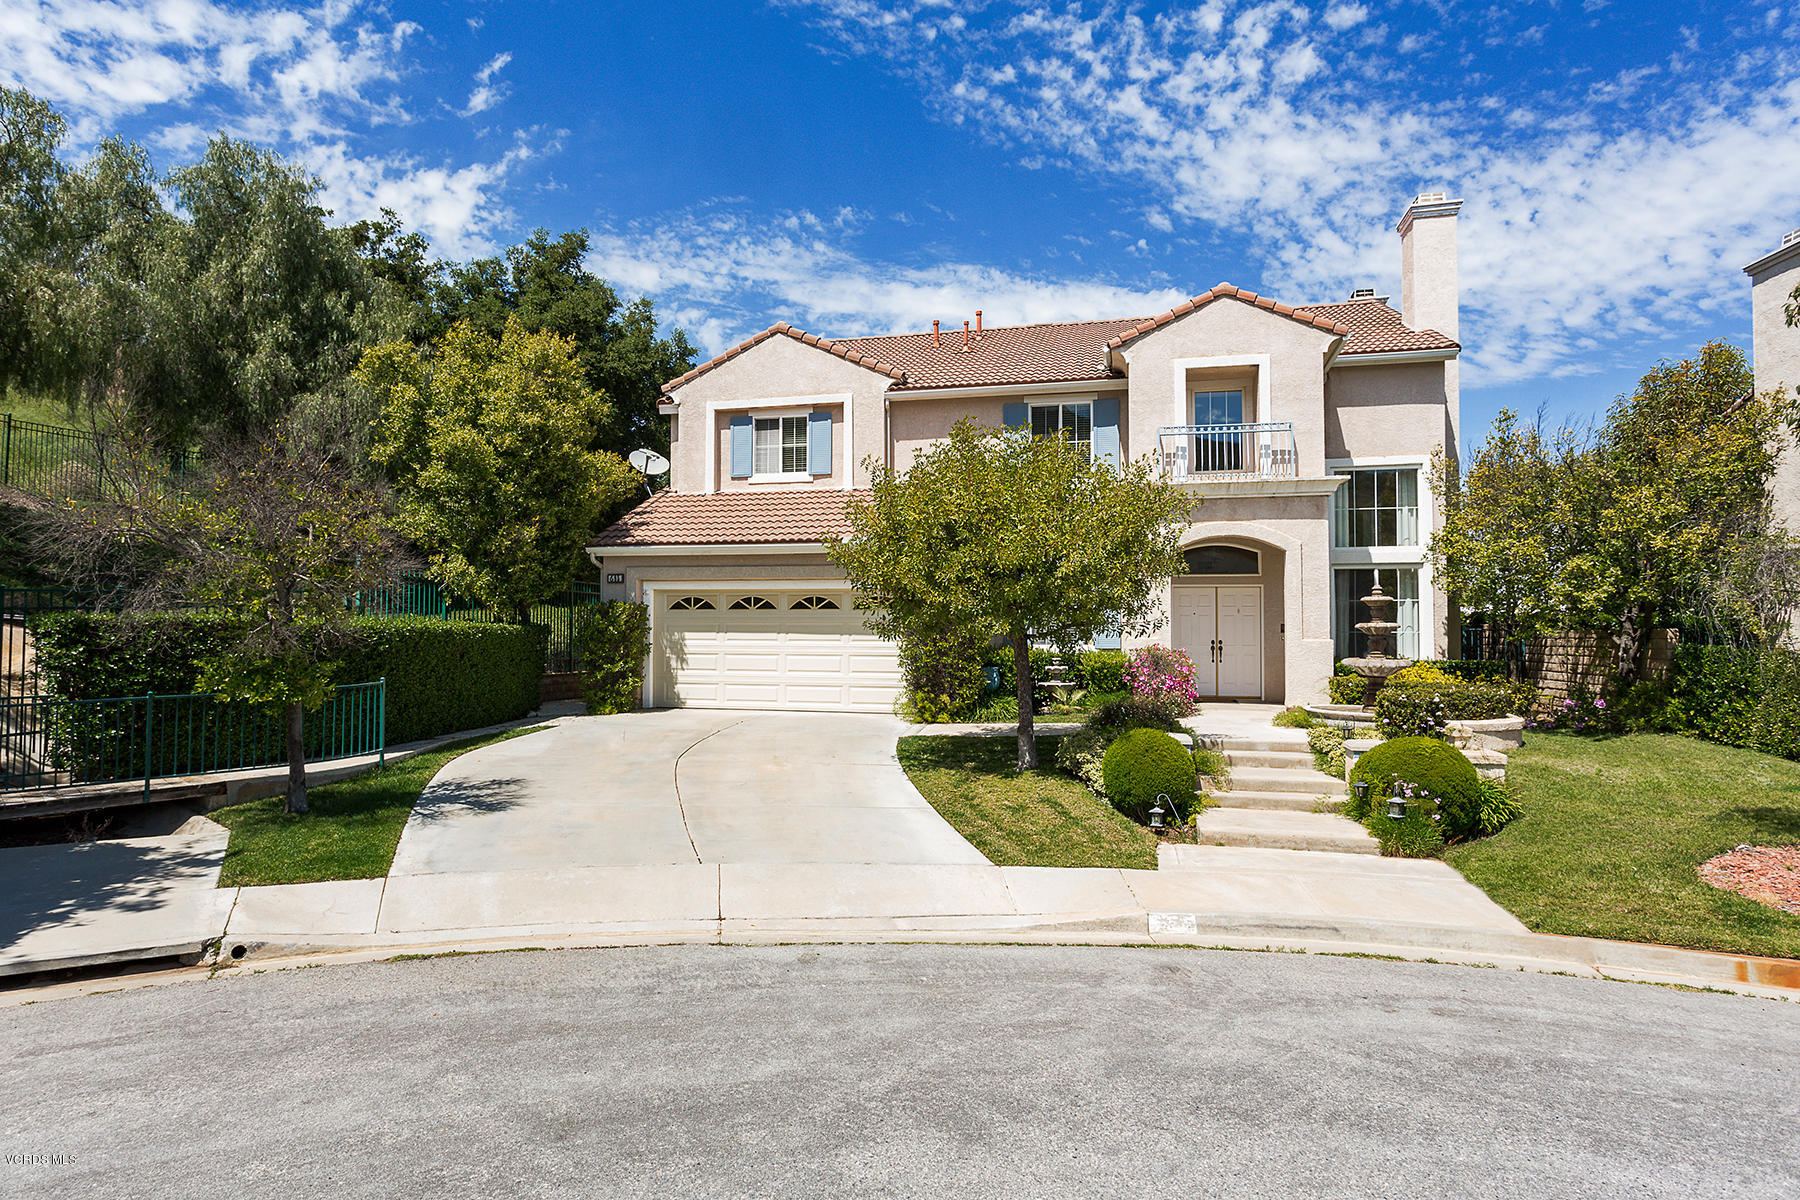 685 Starbright Court, Simi Valley, California